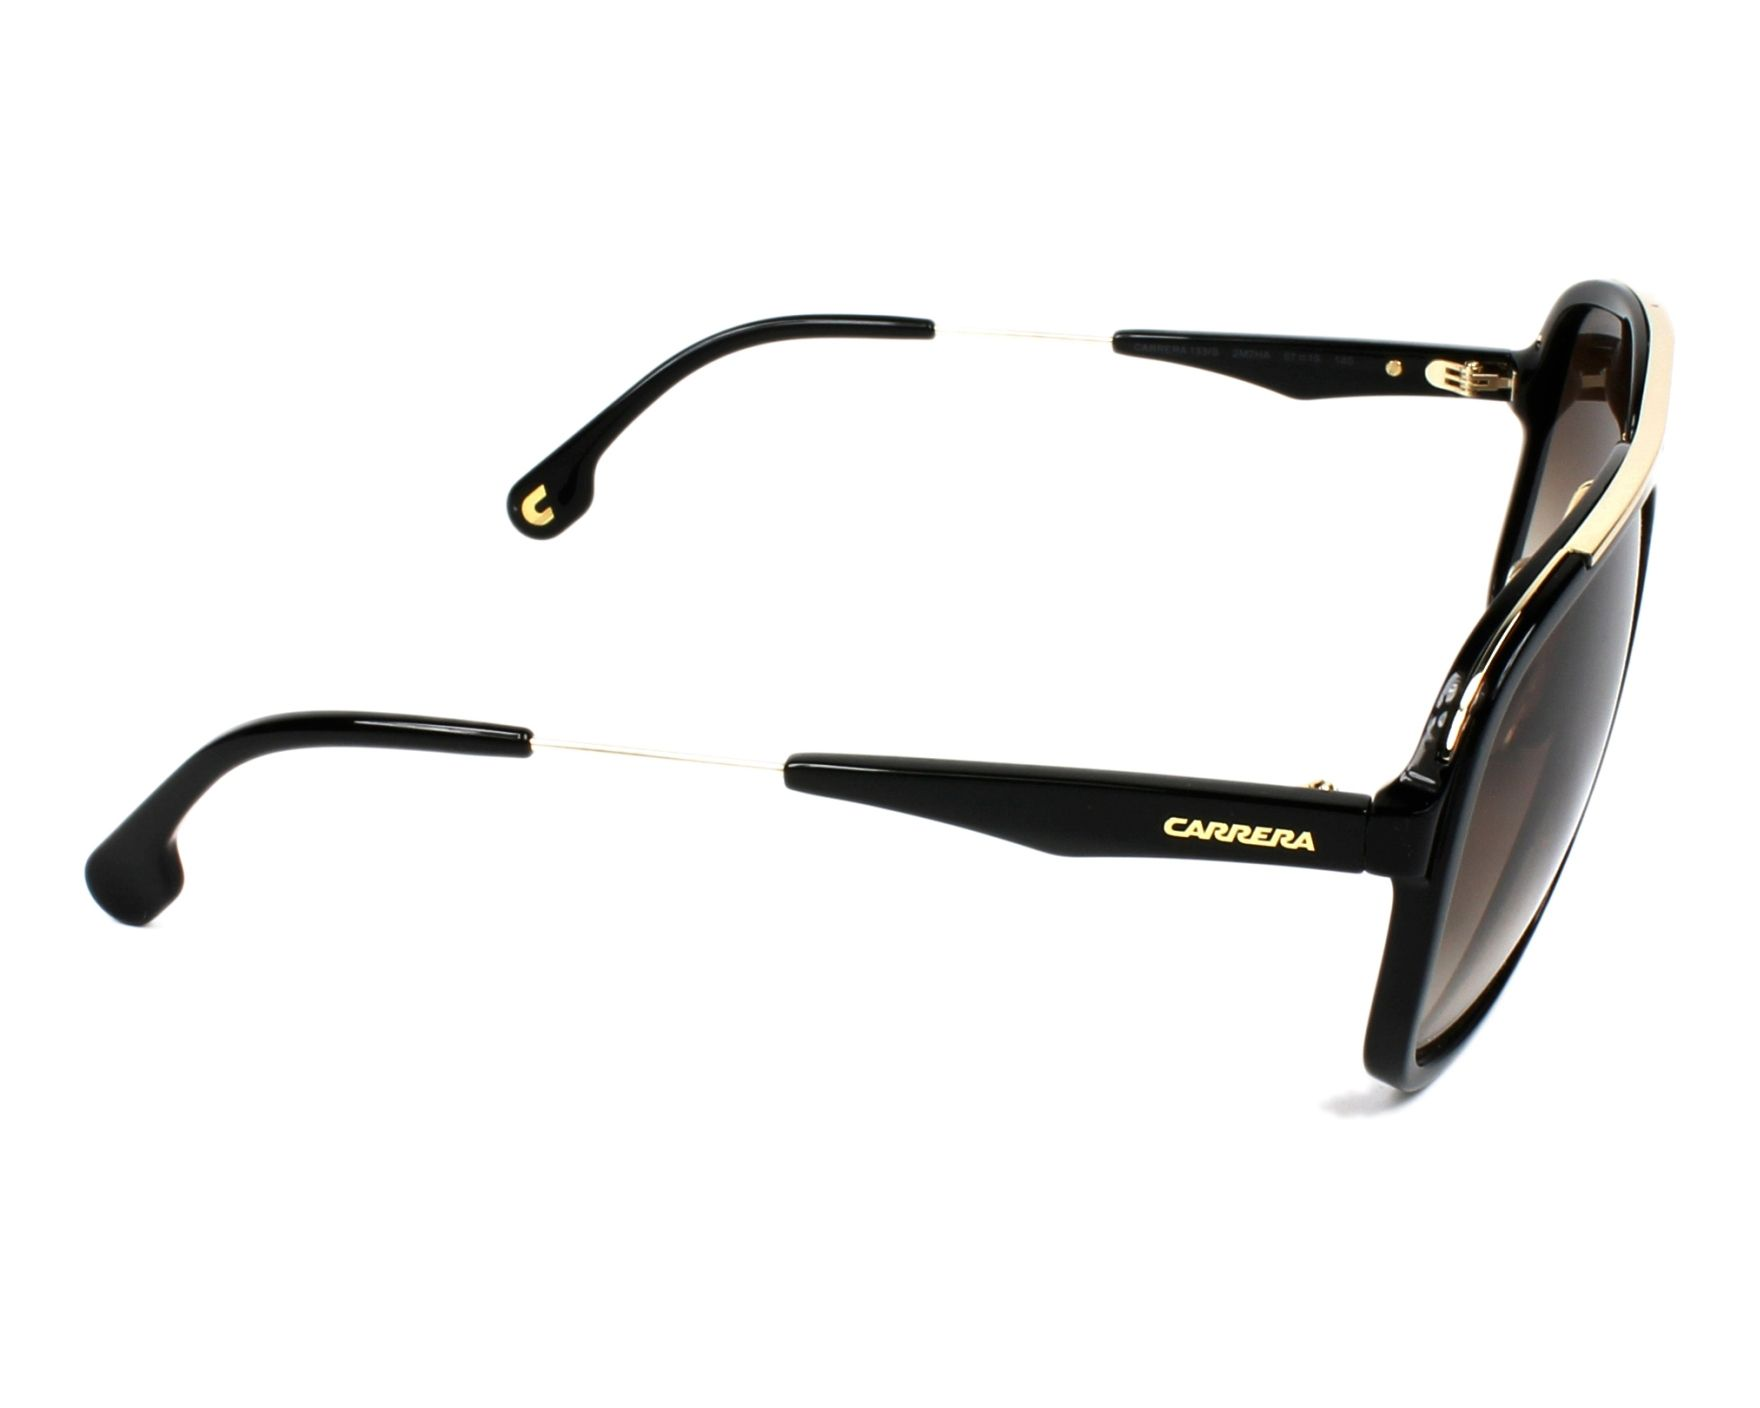 041a023e9ea thumbnail Sunglasses Carrera CARRERA-133-S 2M2 HA - Black Gold side view